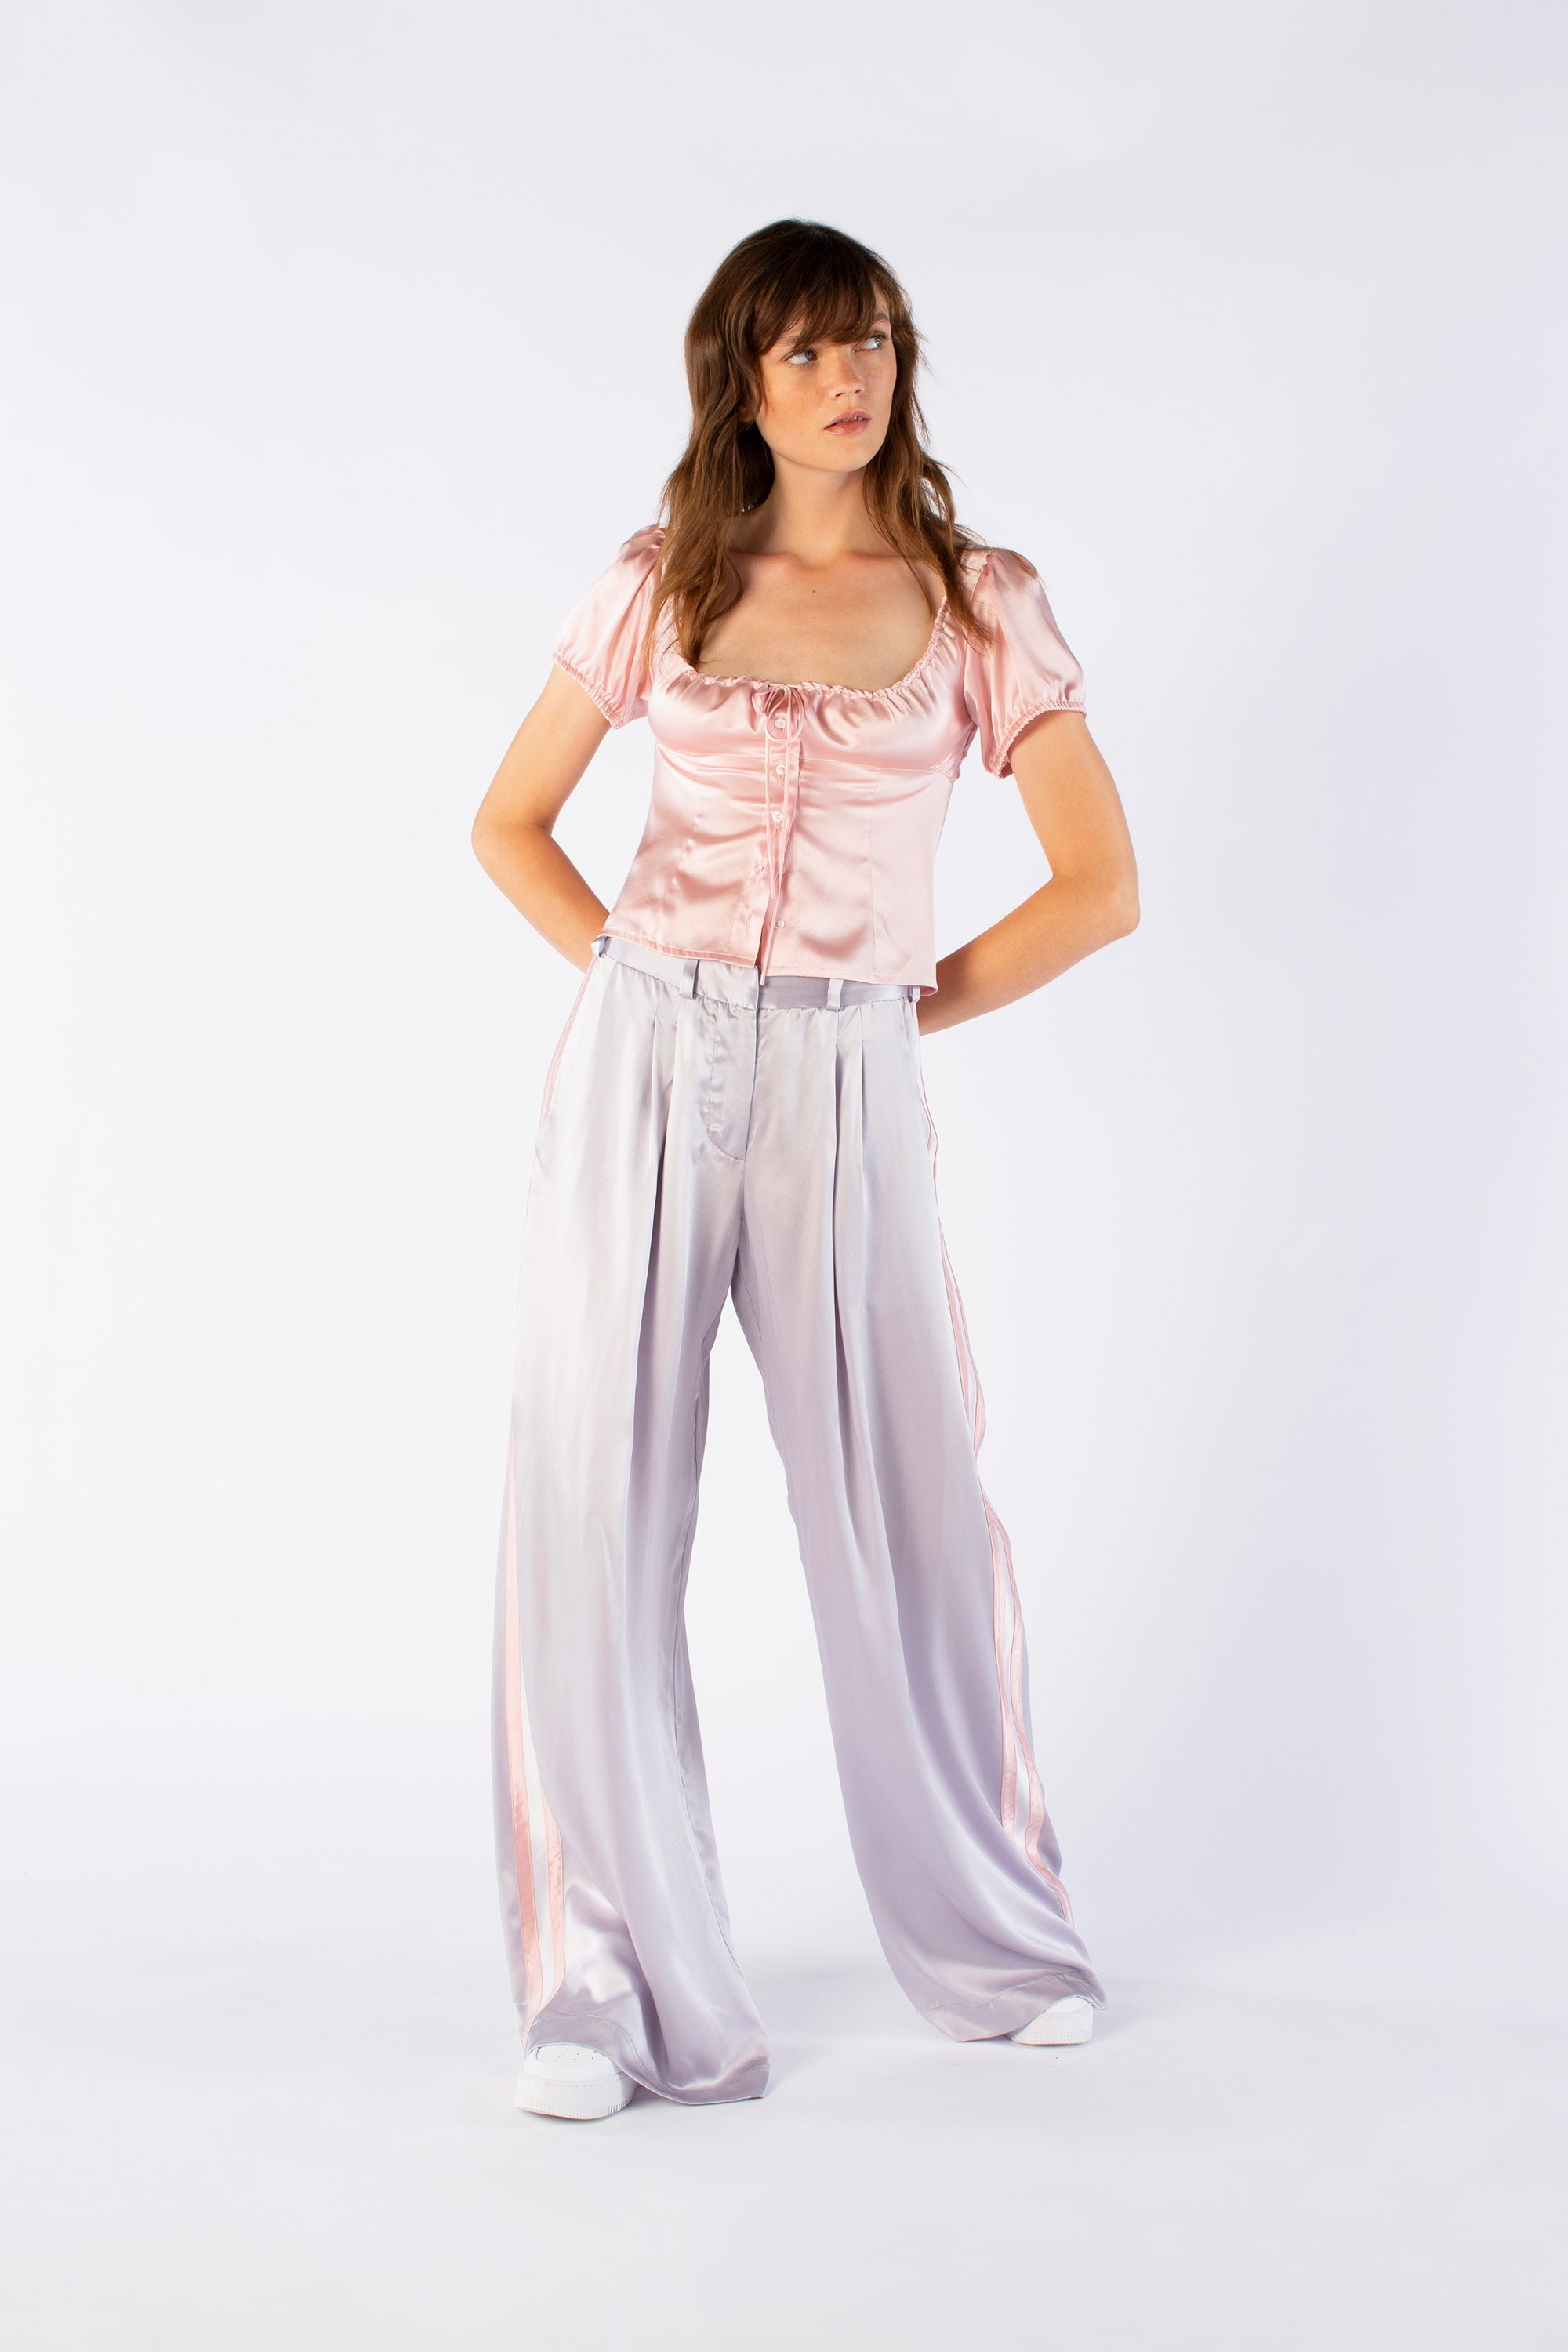 The Serena Trouser - Silver & Dusky Pink Silk - SERENA BUTE